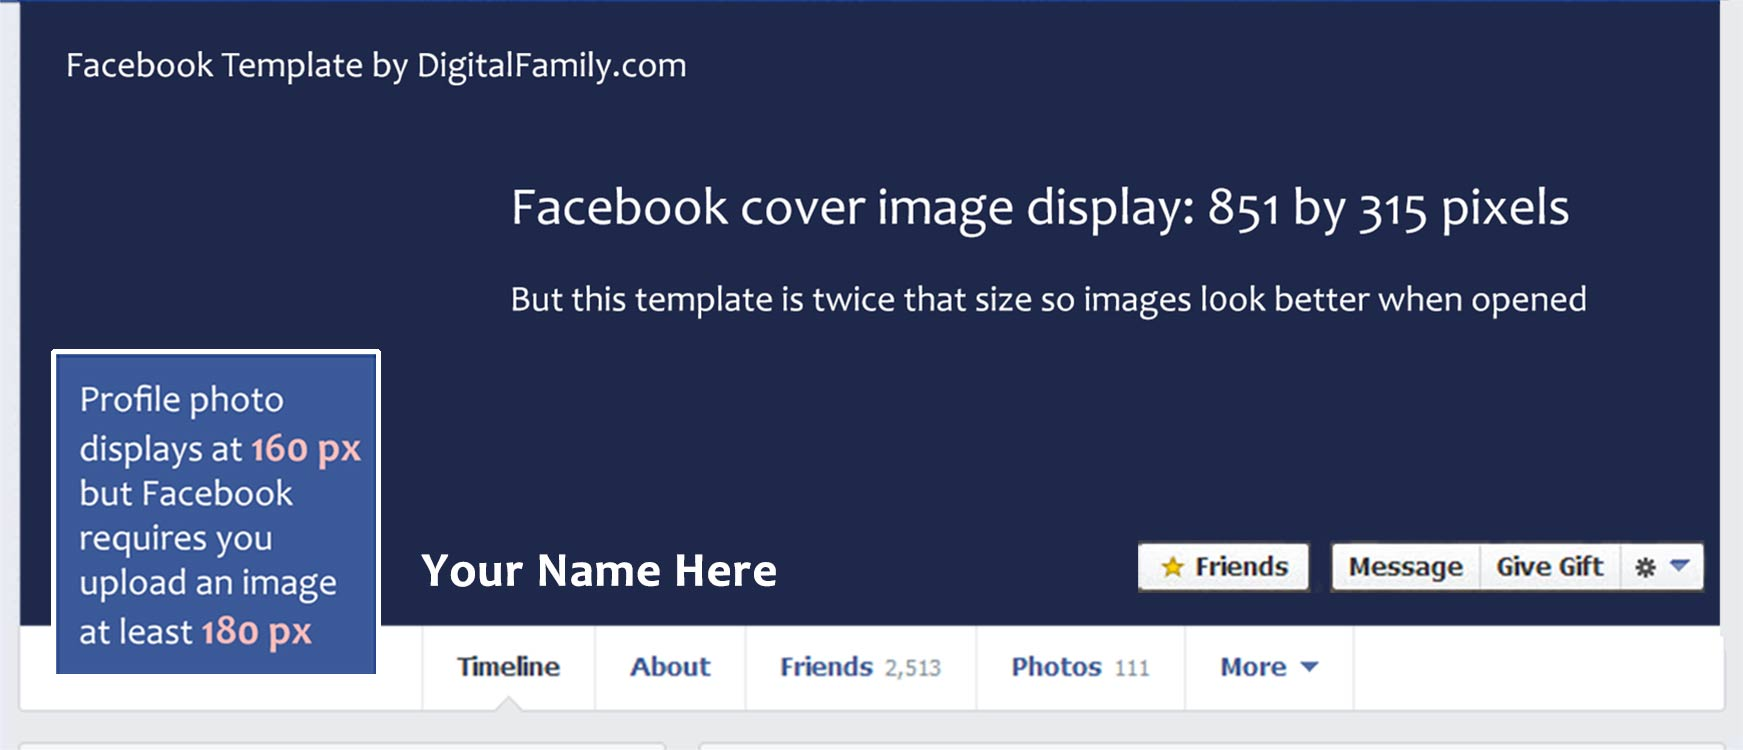 My free template is twice the size facebook recommends facebook template 3 2014 pronofoot35fo Gallery